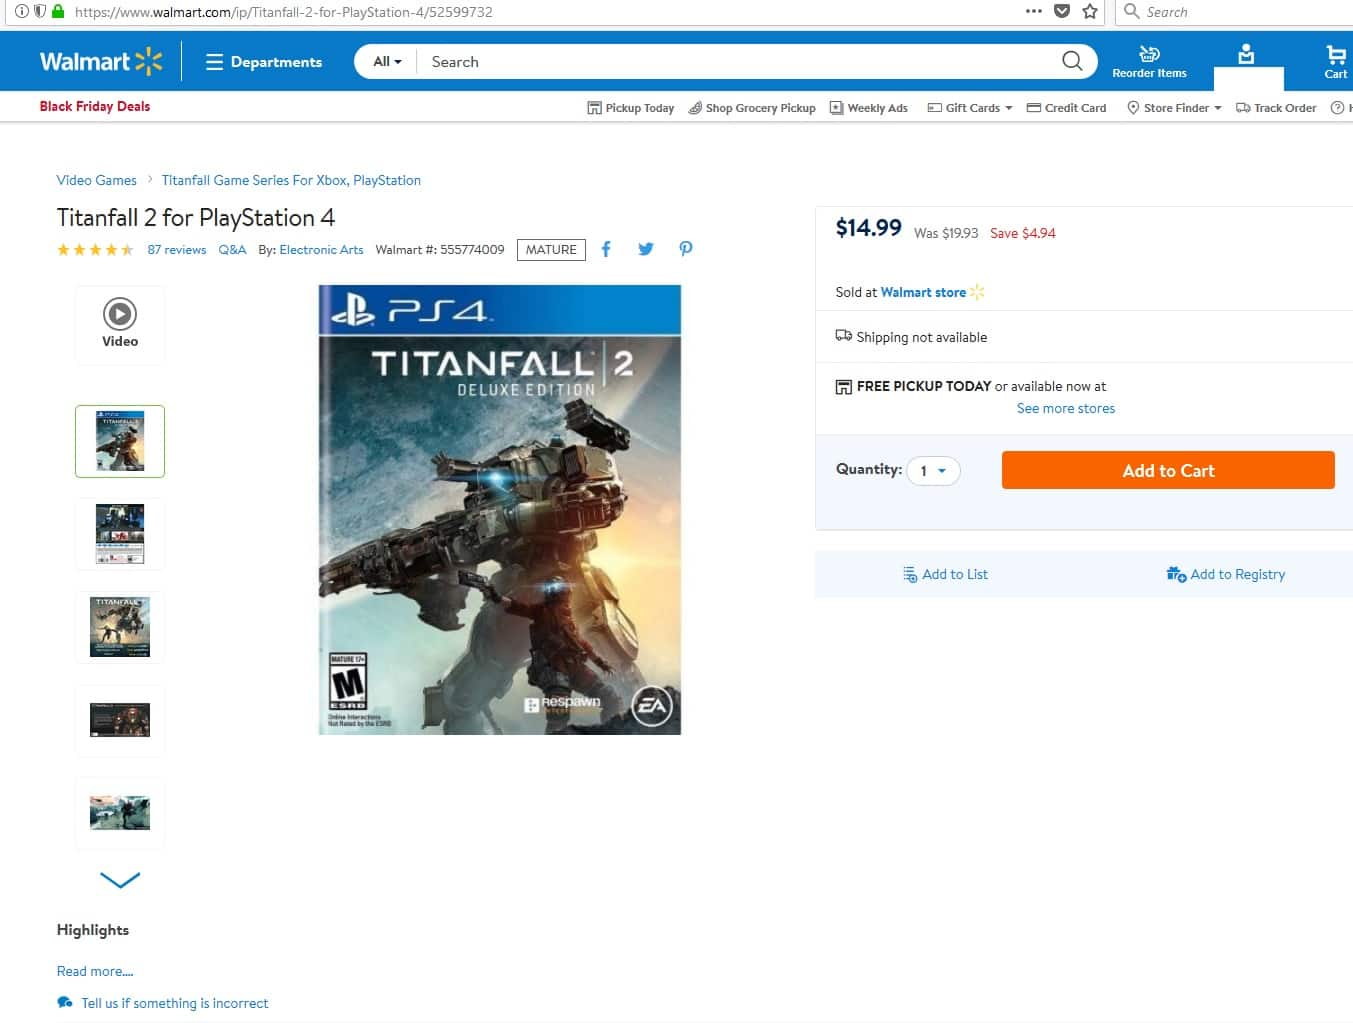 Titanfall 2 Deluxe Edition  (YMMV)(PICK UP ONLY) $14.99